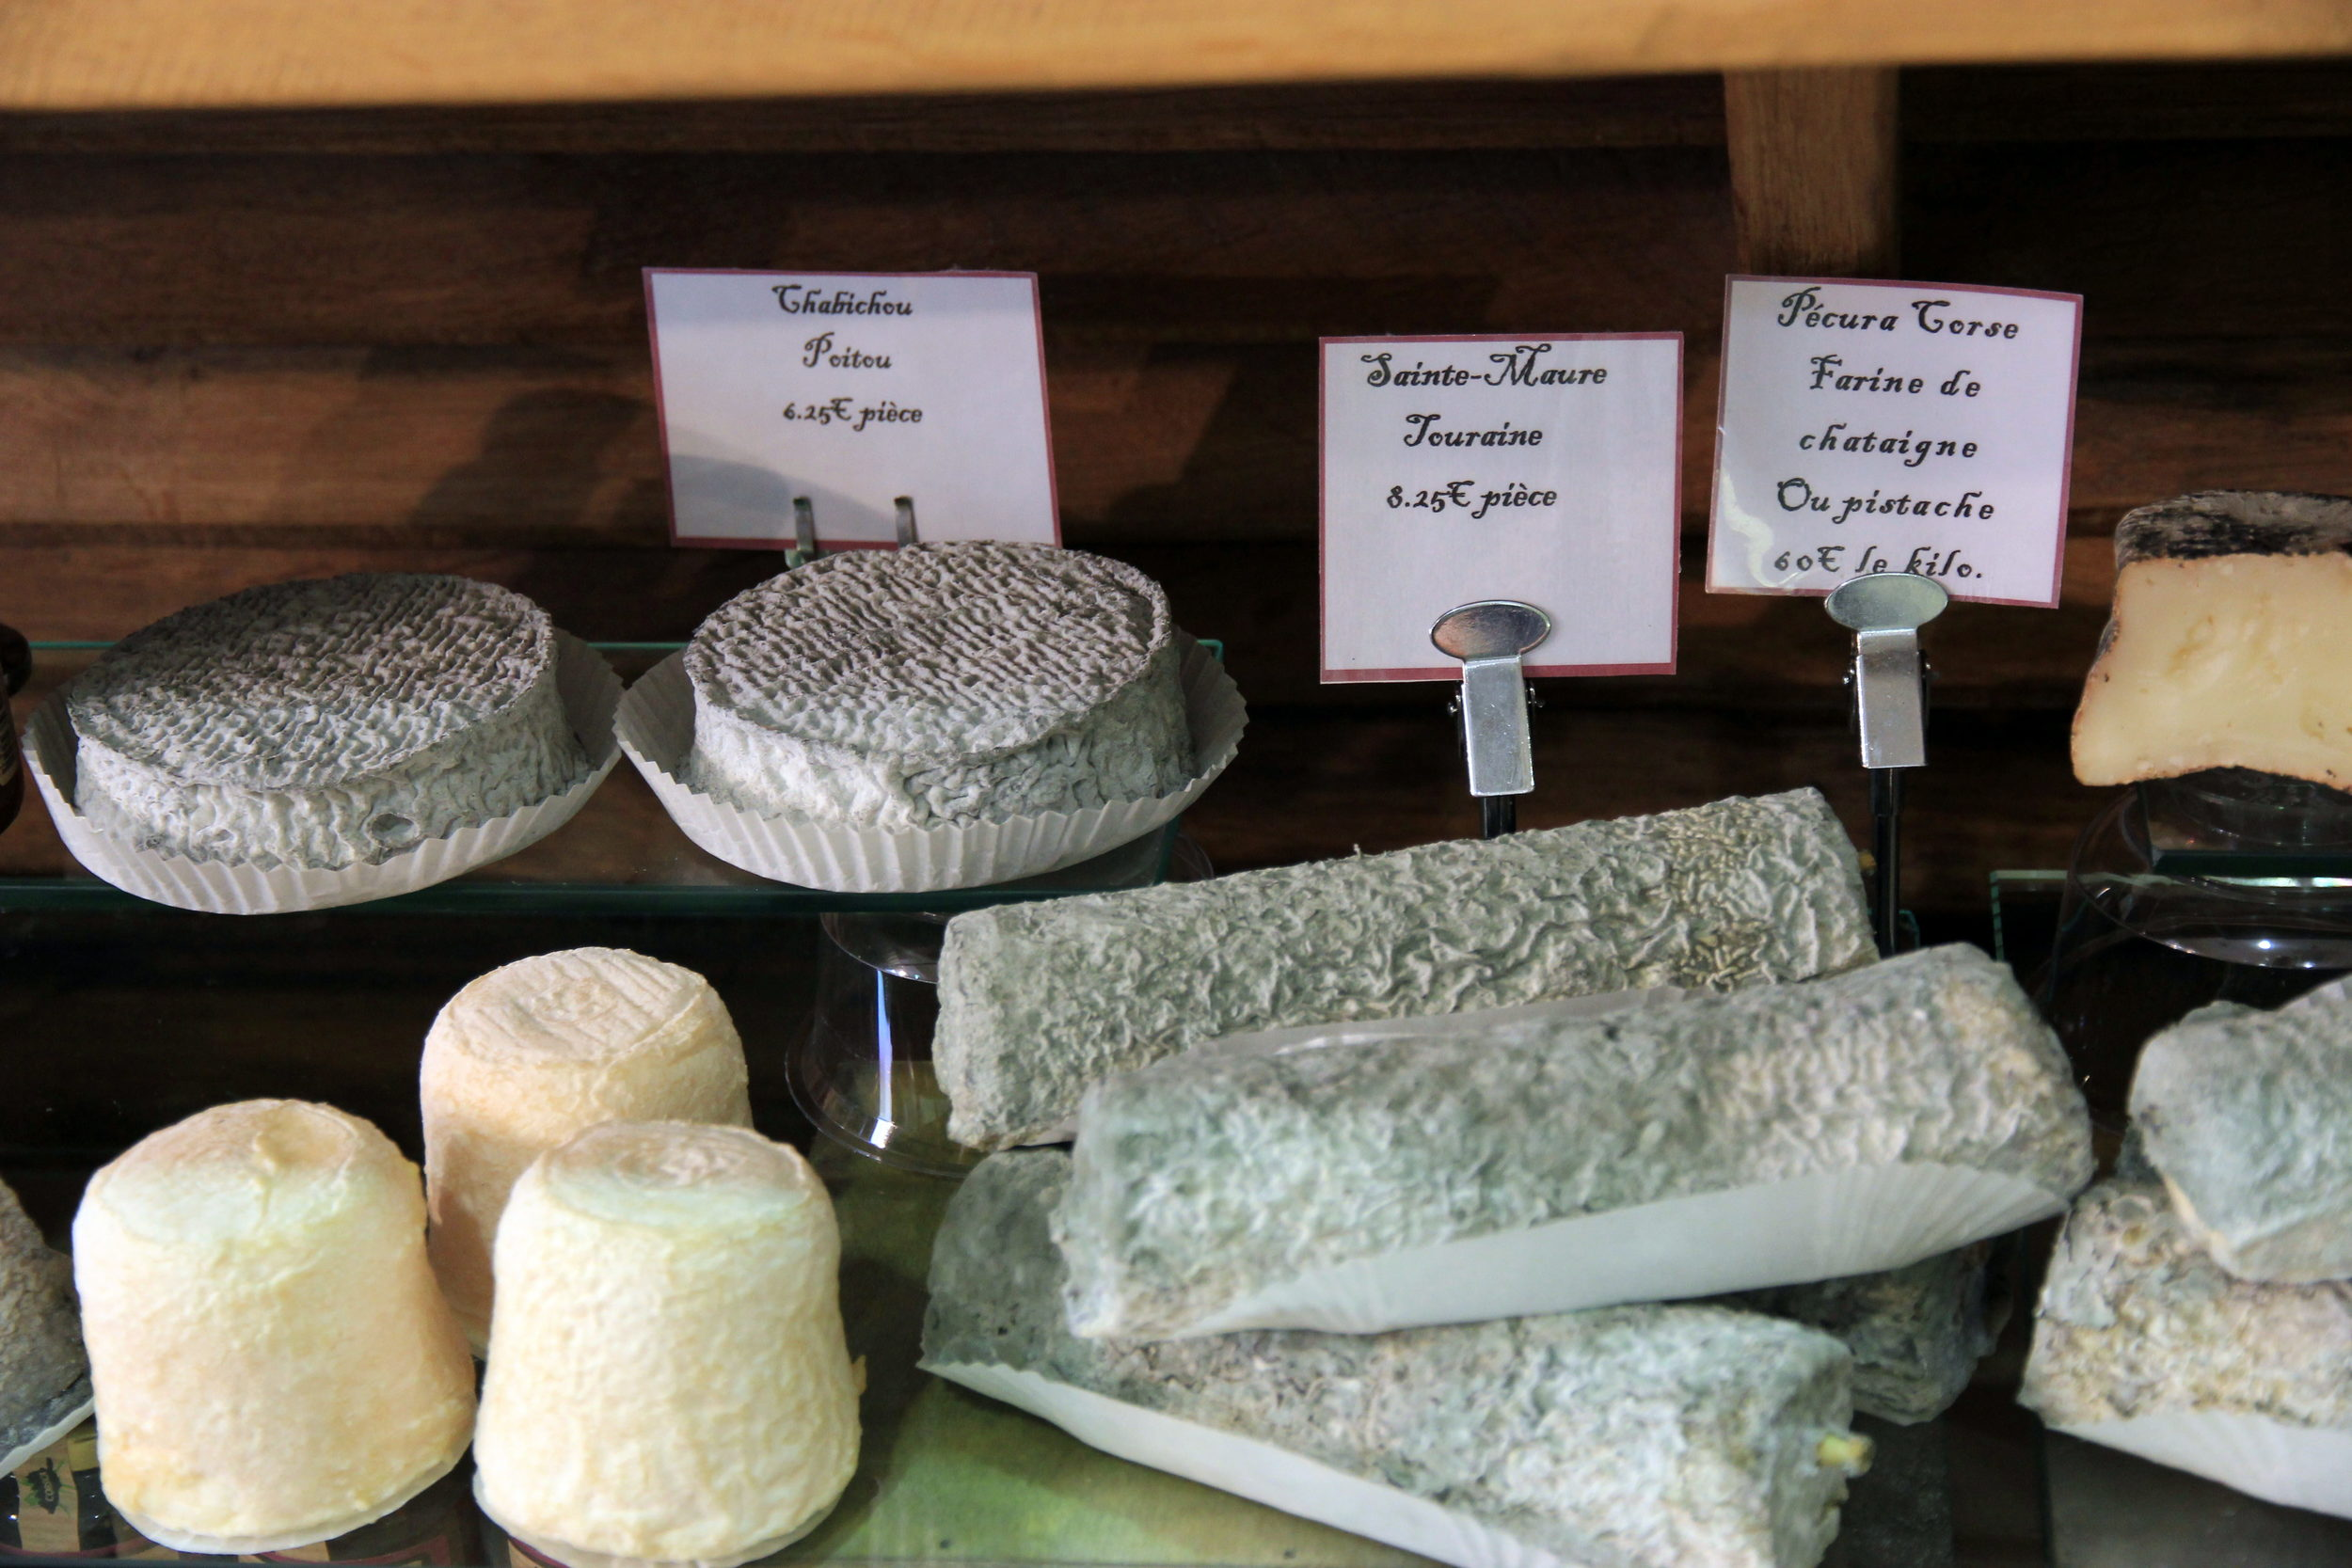 Part of the chèvre section at Fromagerie Libert